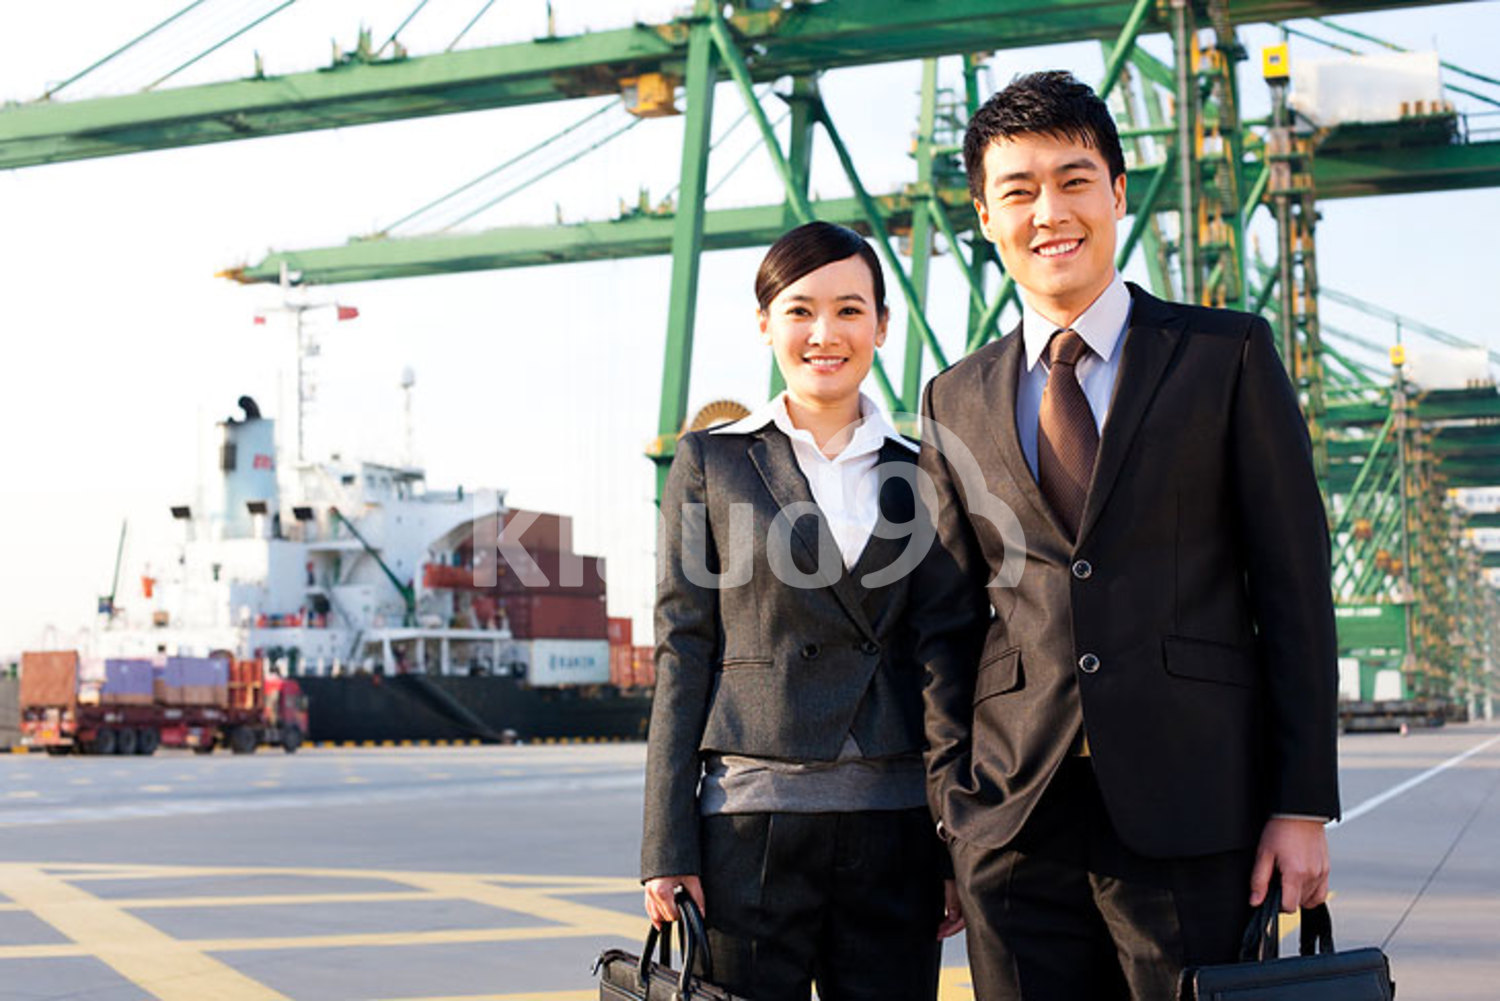 Chinese businesspeople at a shipping port